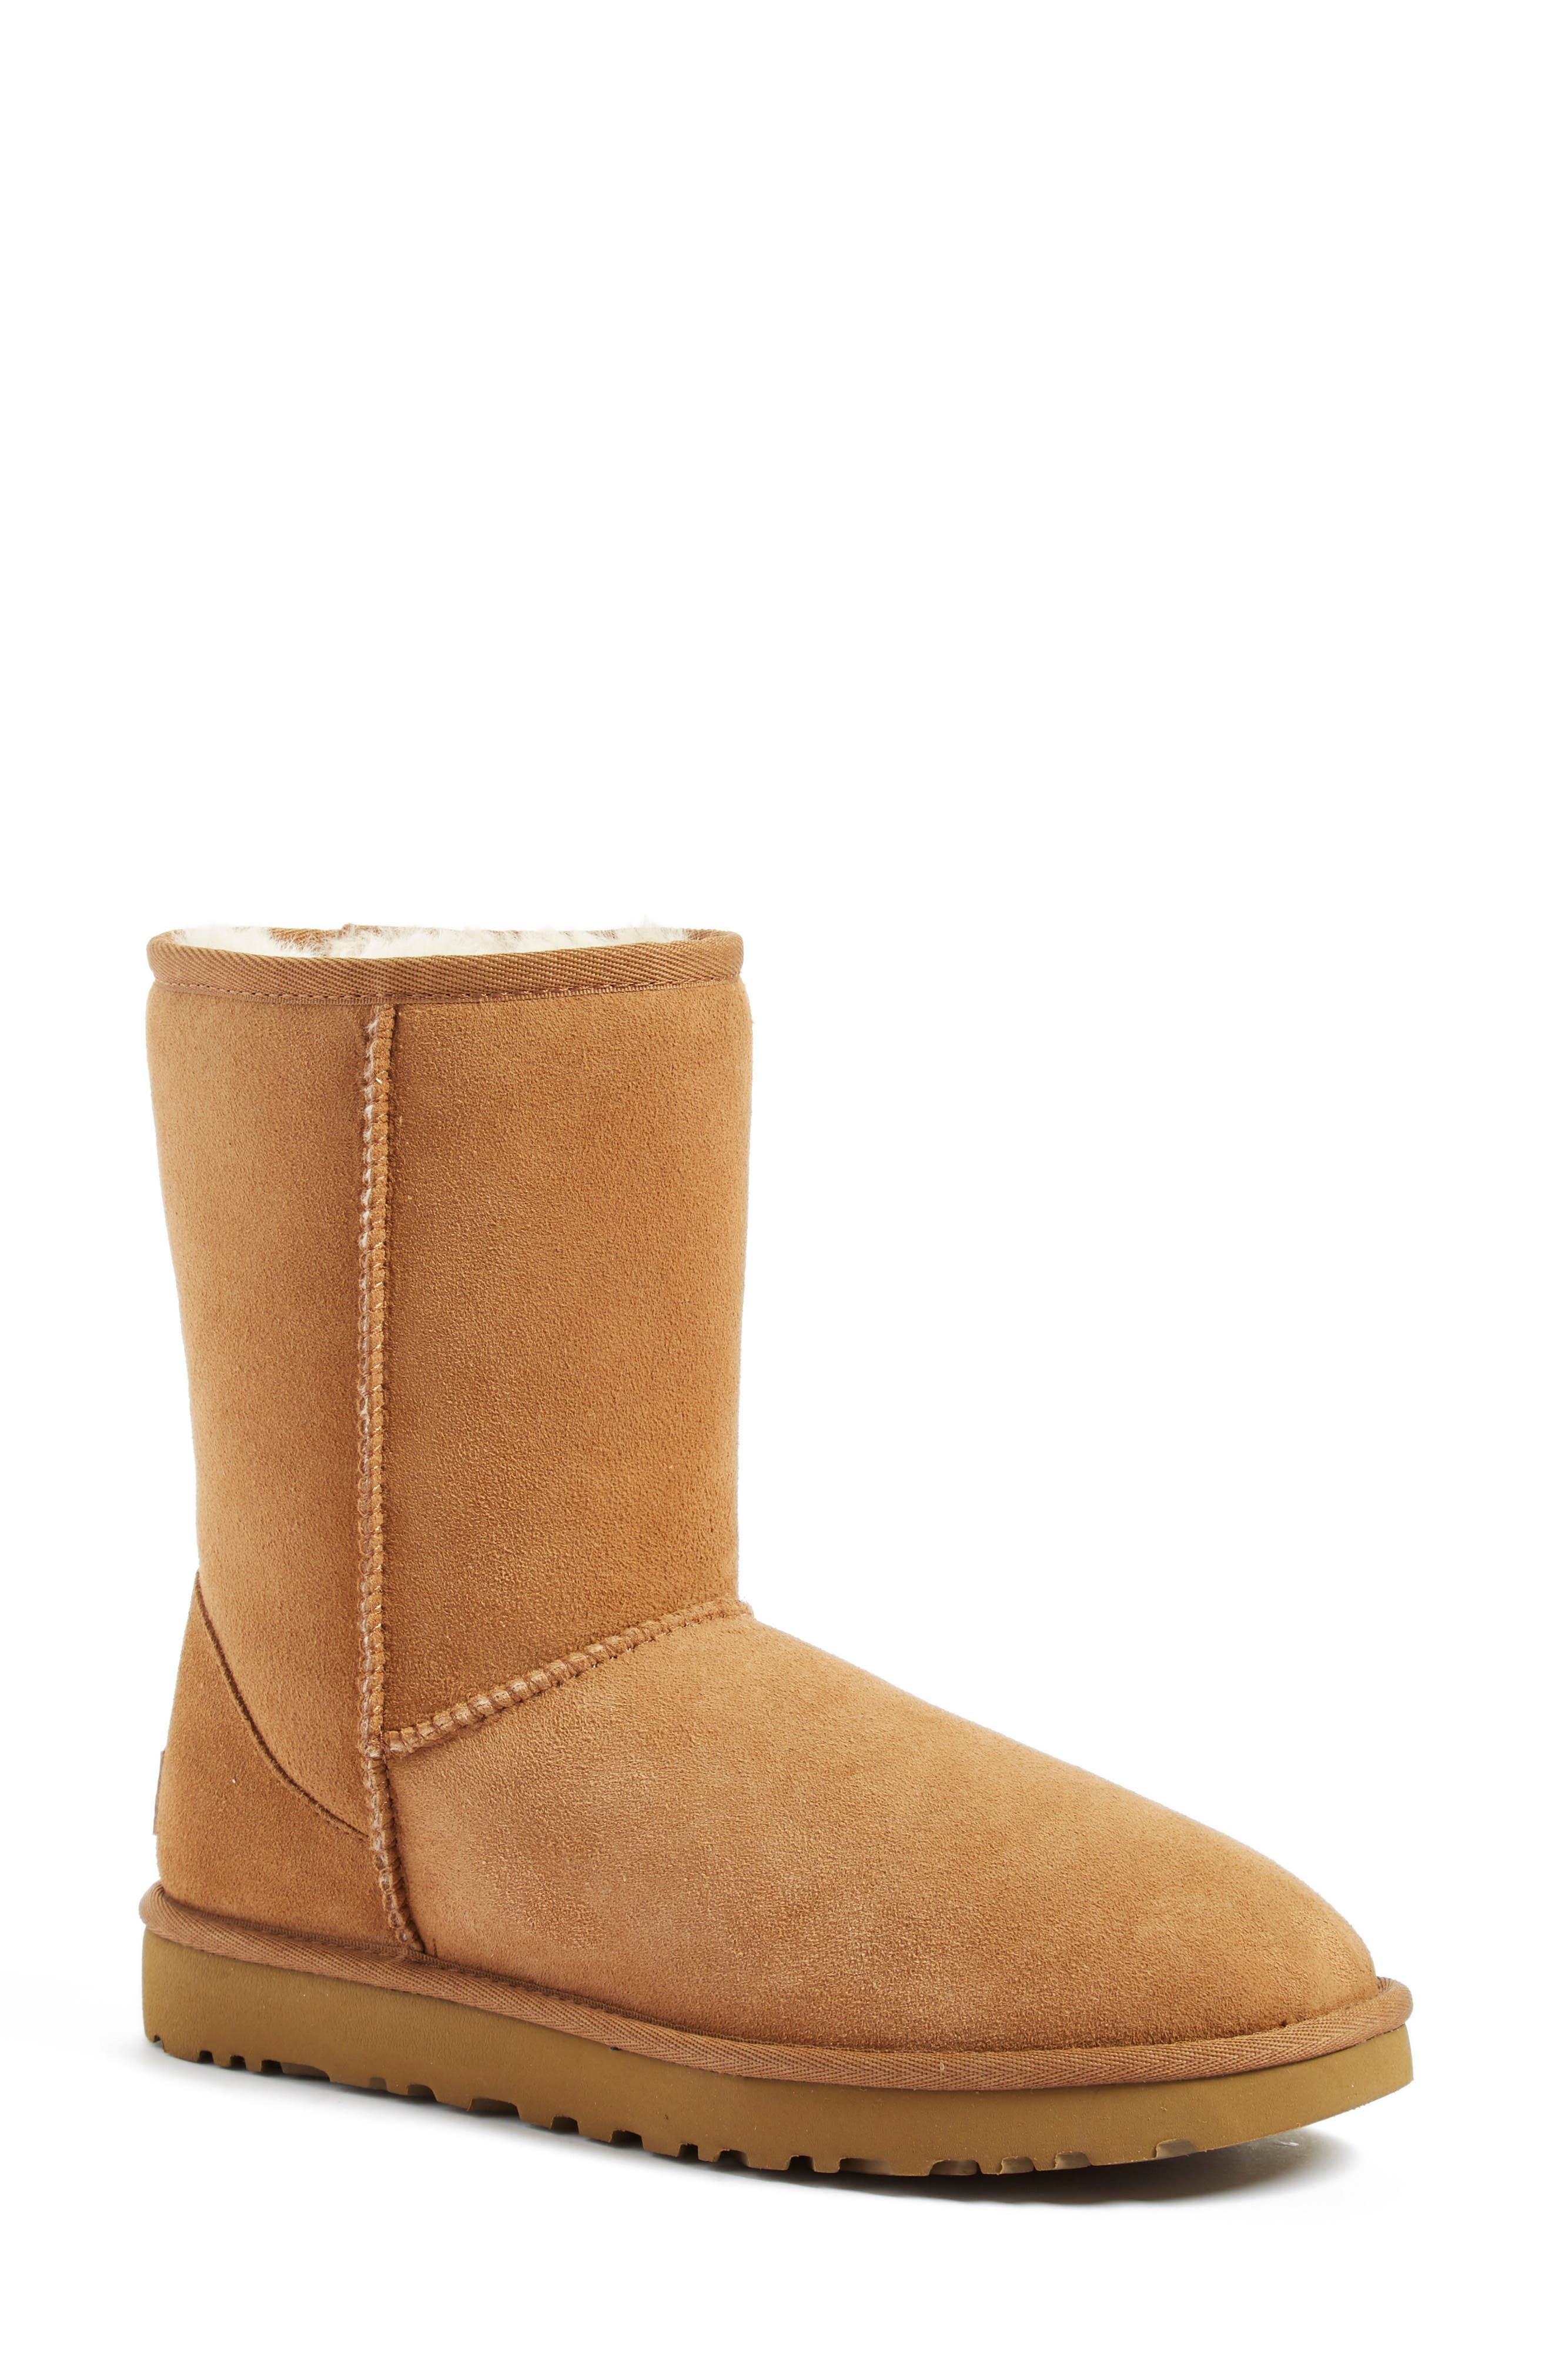 'Classic II' Genuine Shearling Lined Short Boot,                             Main thumbnail 1, color,                             CHESTNUT SUEDE